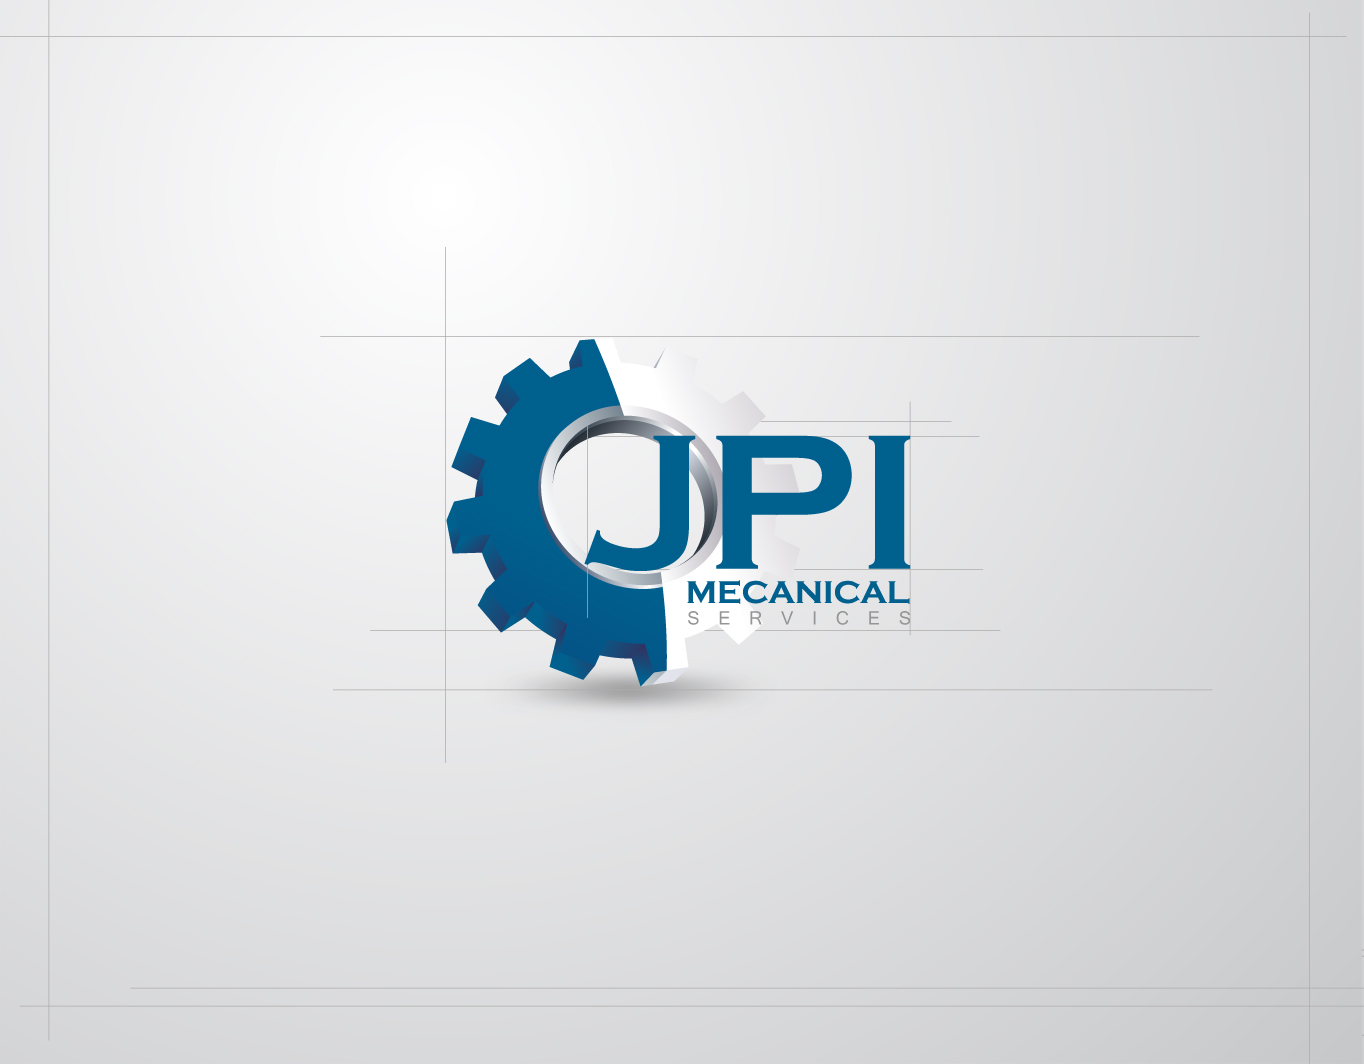 Logo Design by Mark Anthony Moreto Jordan - Entry No. 33 in the Logo Design Contest Inspiring Logo Design for JPI Mecanical Services.